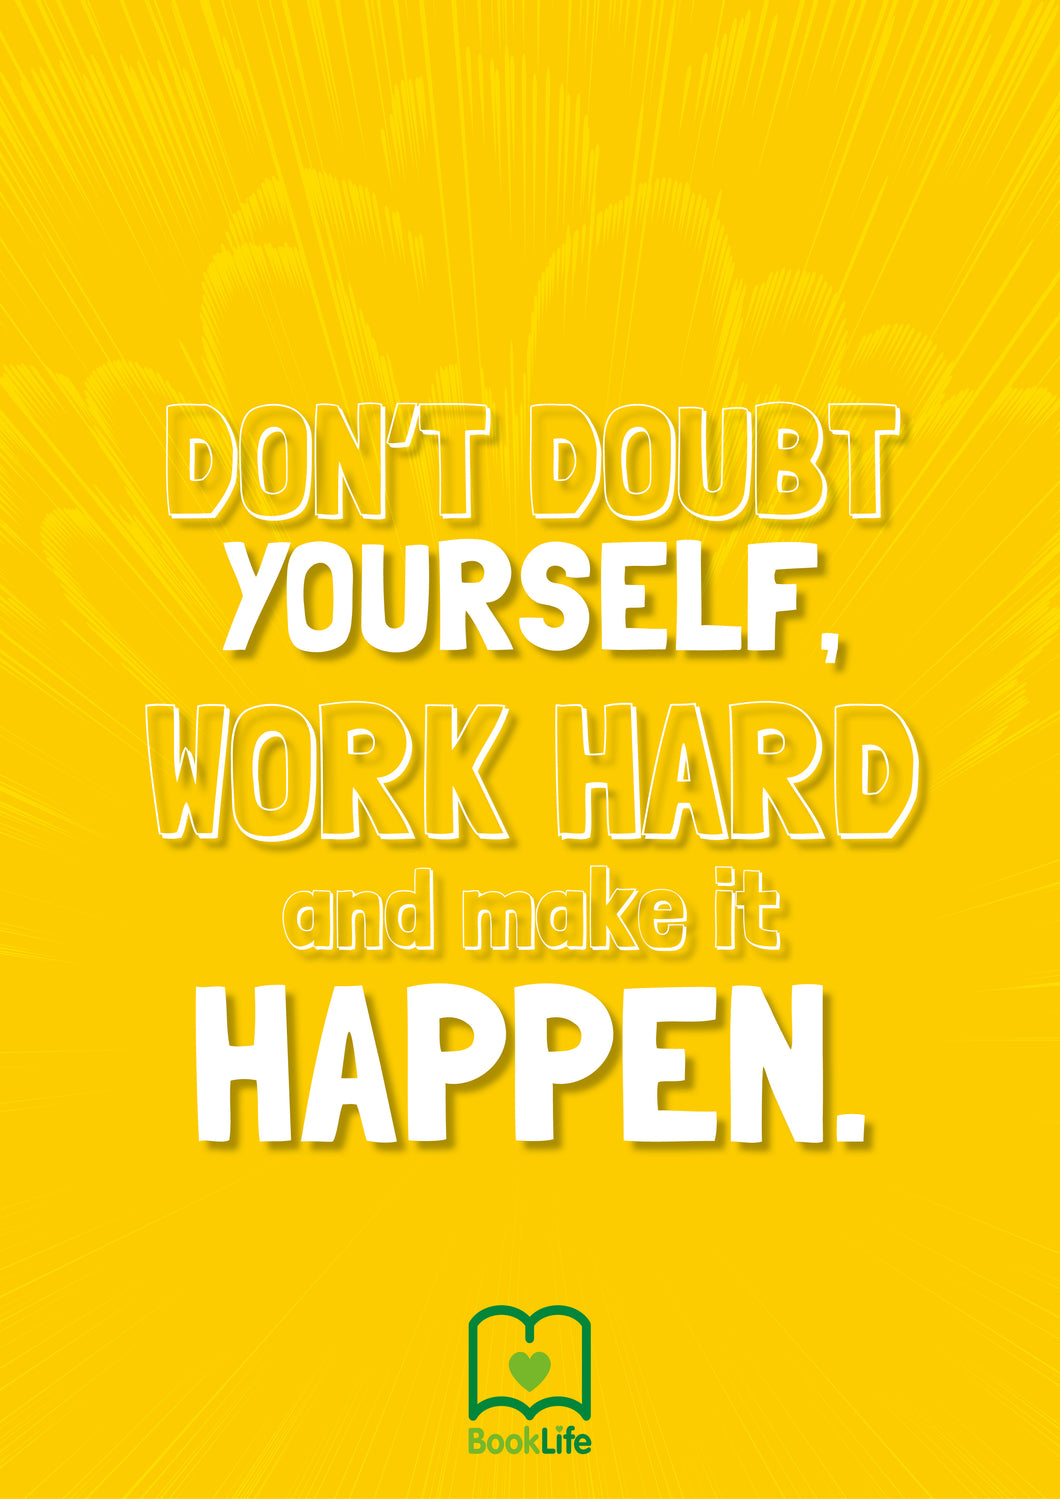 Free Work Hard Quote Poster by BookLife